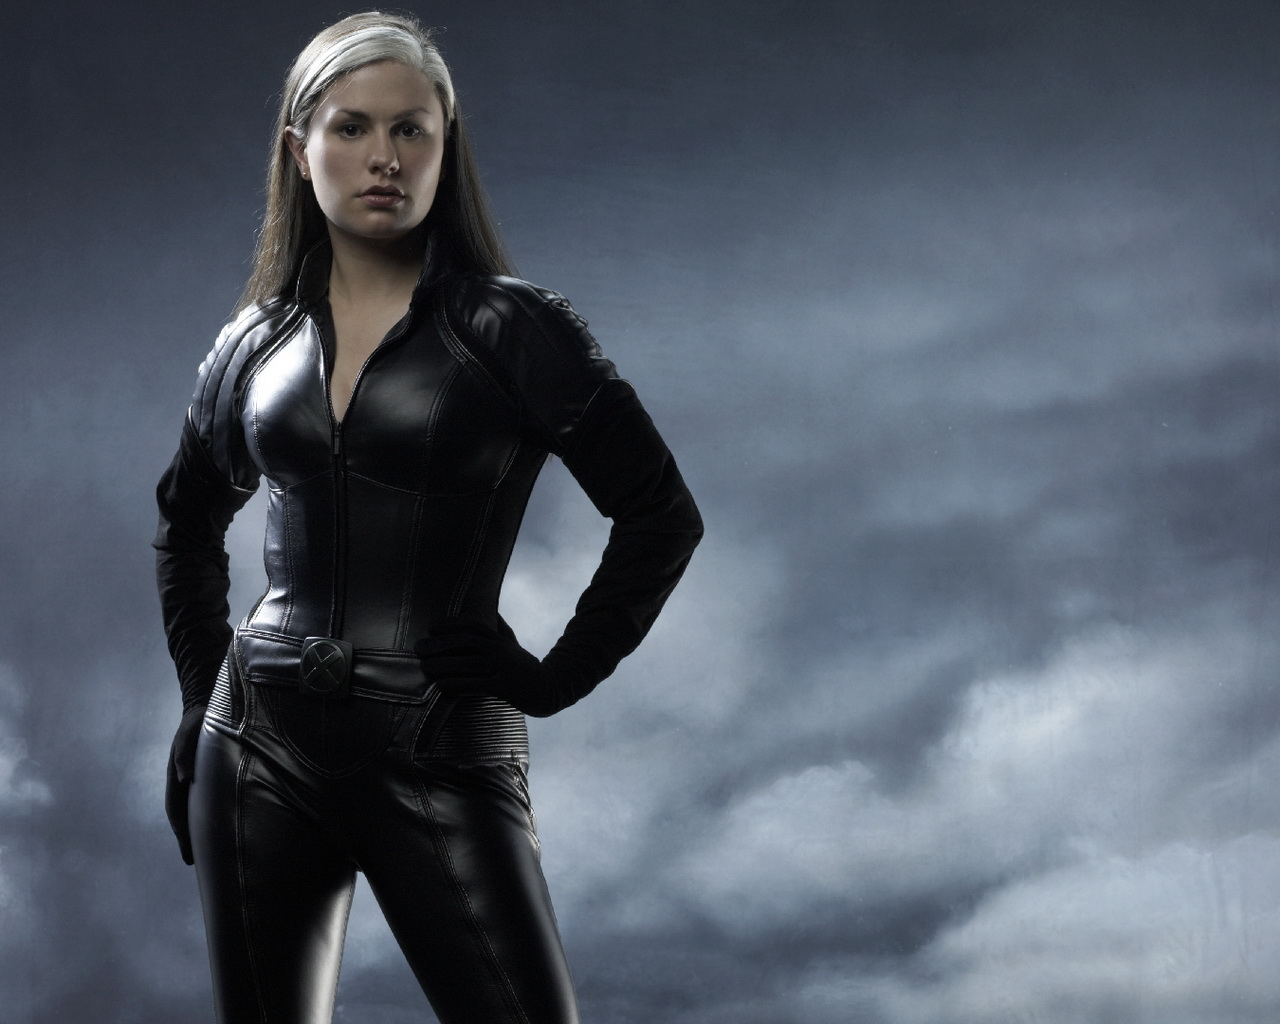 1280x1024 - Anna Paquin Wallpapers 8